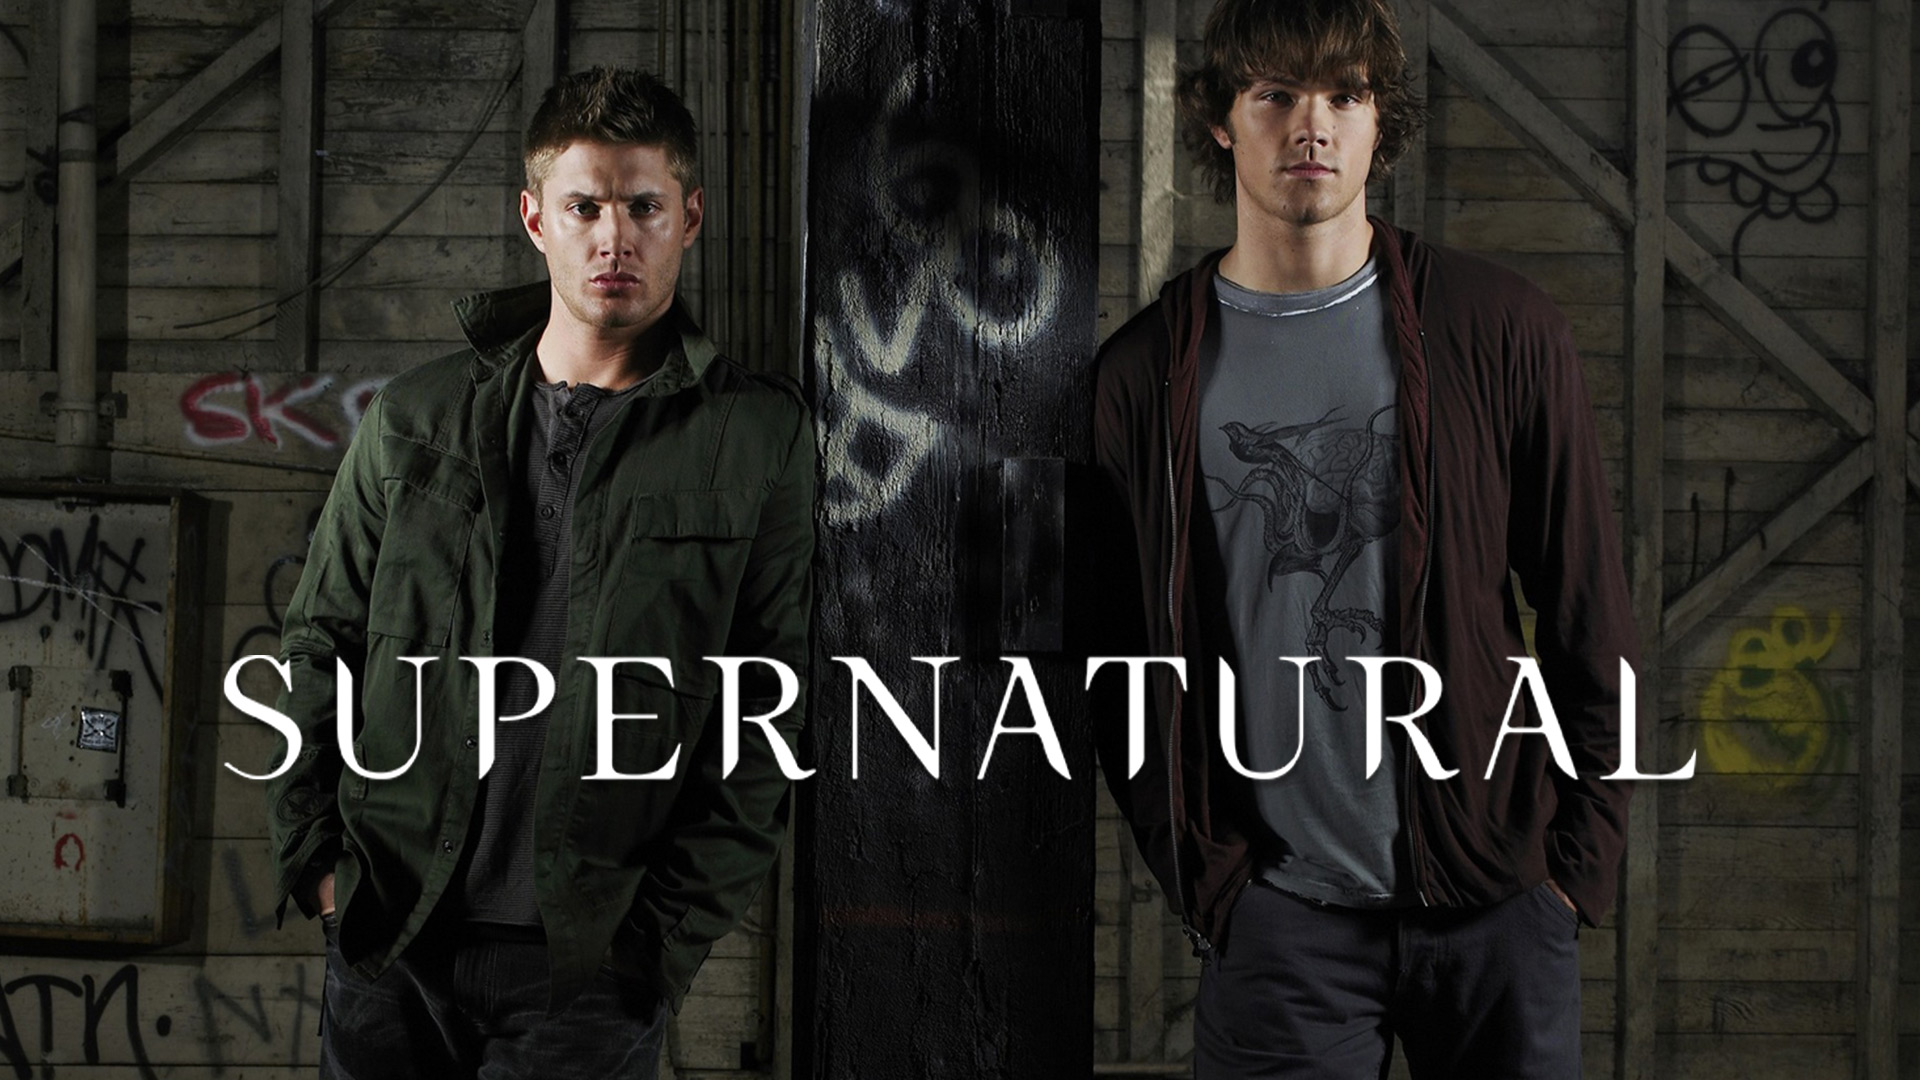 Supernatural: The Complete First Season